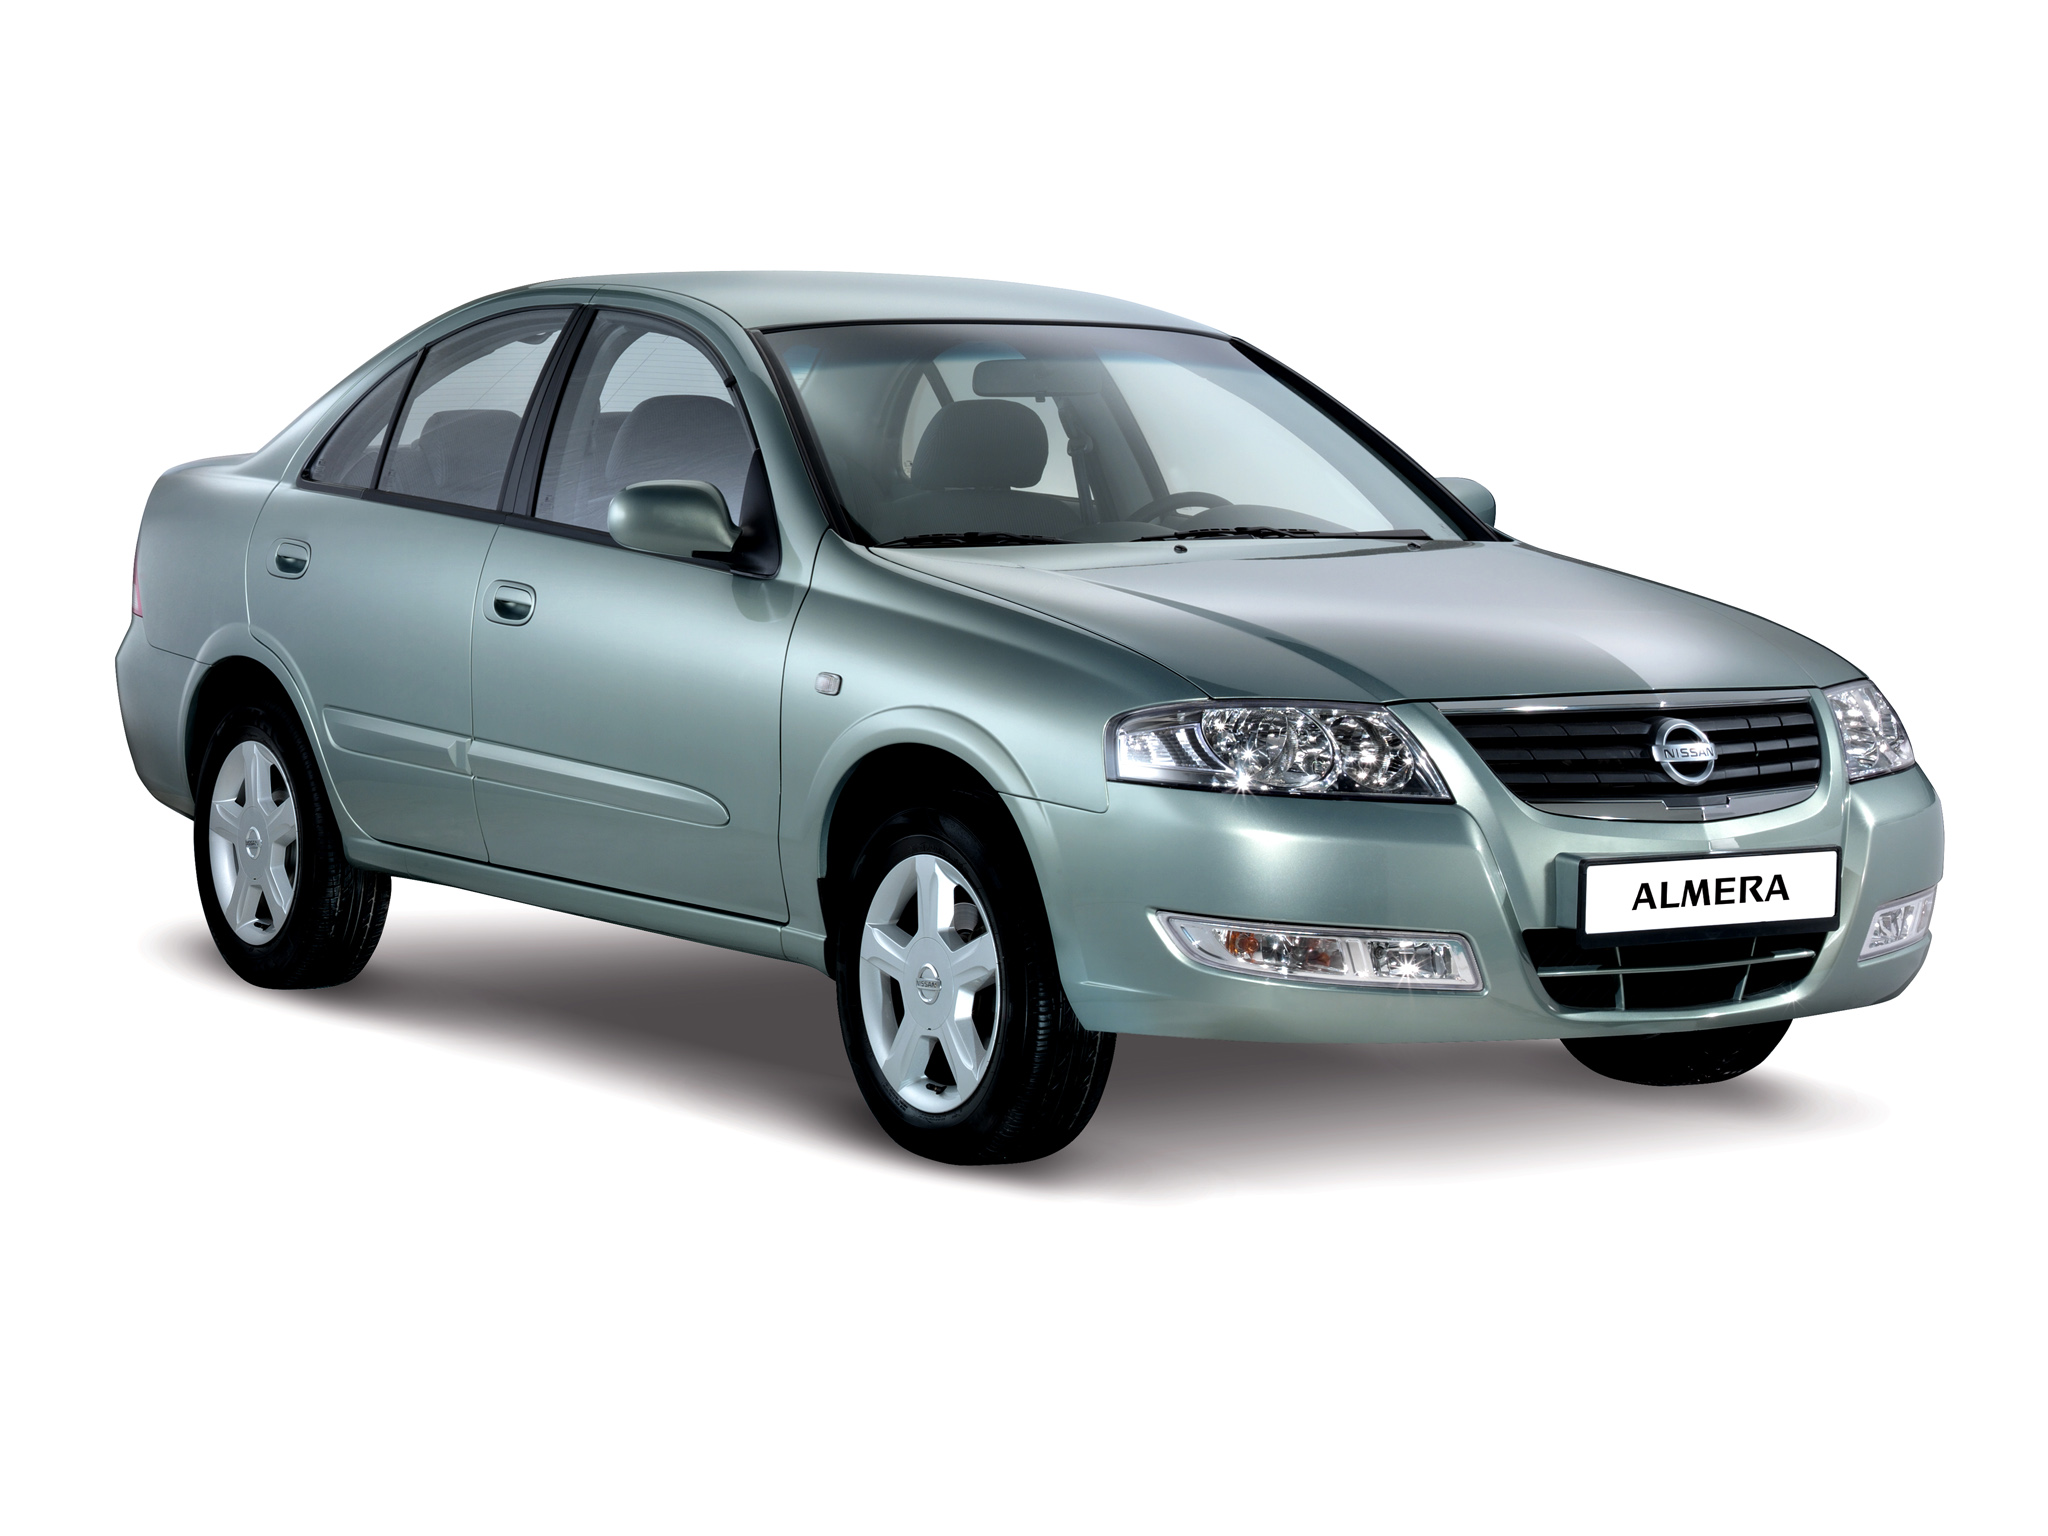 2007 Nissan Almera classic (b10) – pictures, information ...